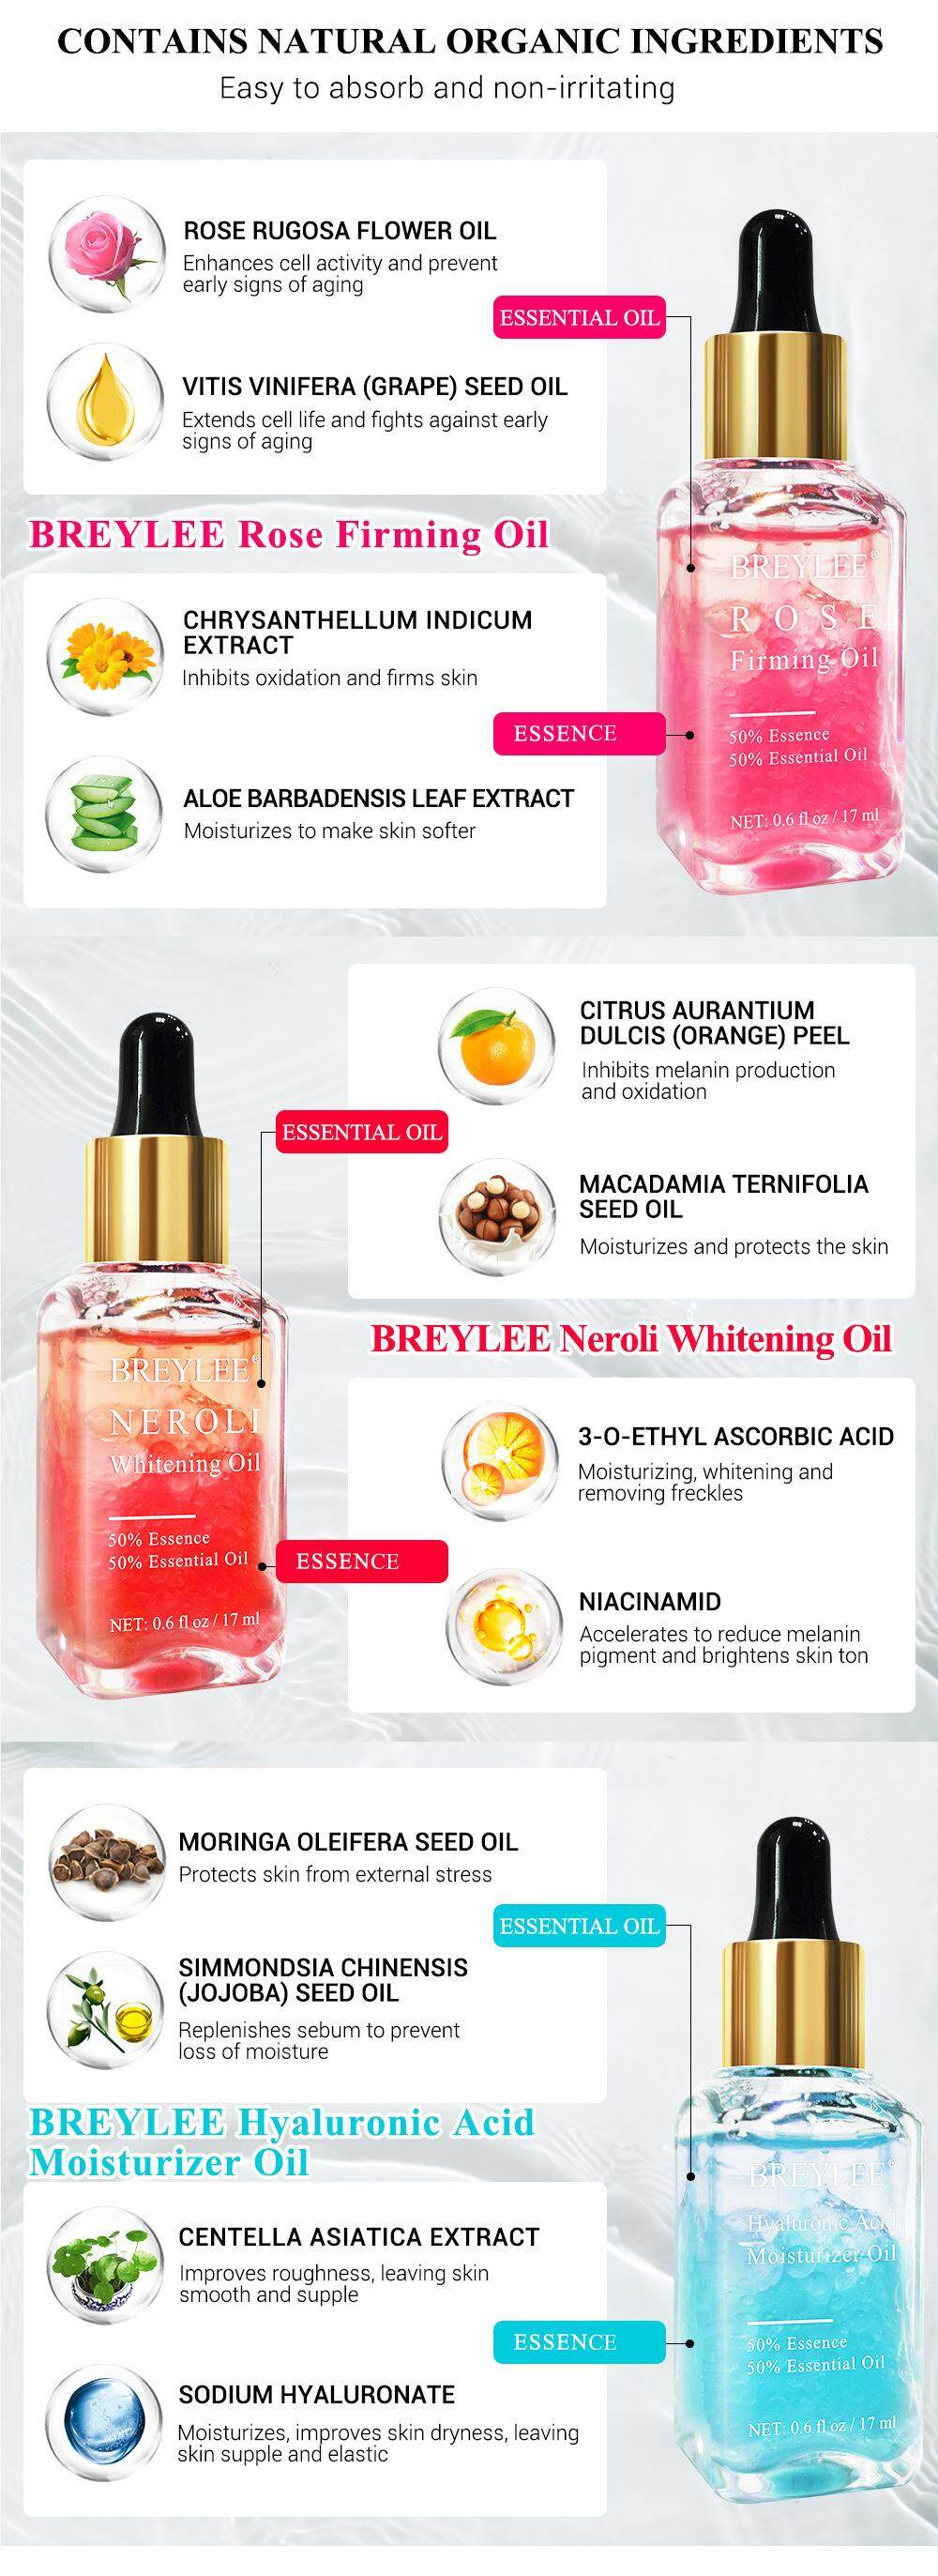 【Buy 1 get 1 FREE】BREYLEE Moisturizing Hyaluronic Acid Face Serum Essential  Oil Relieve Skin Dryness and Roughness Elastic Skin Care 17ML